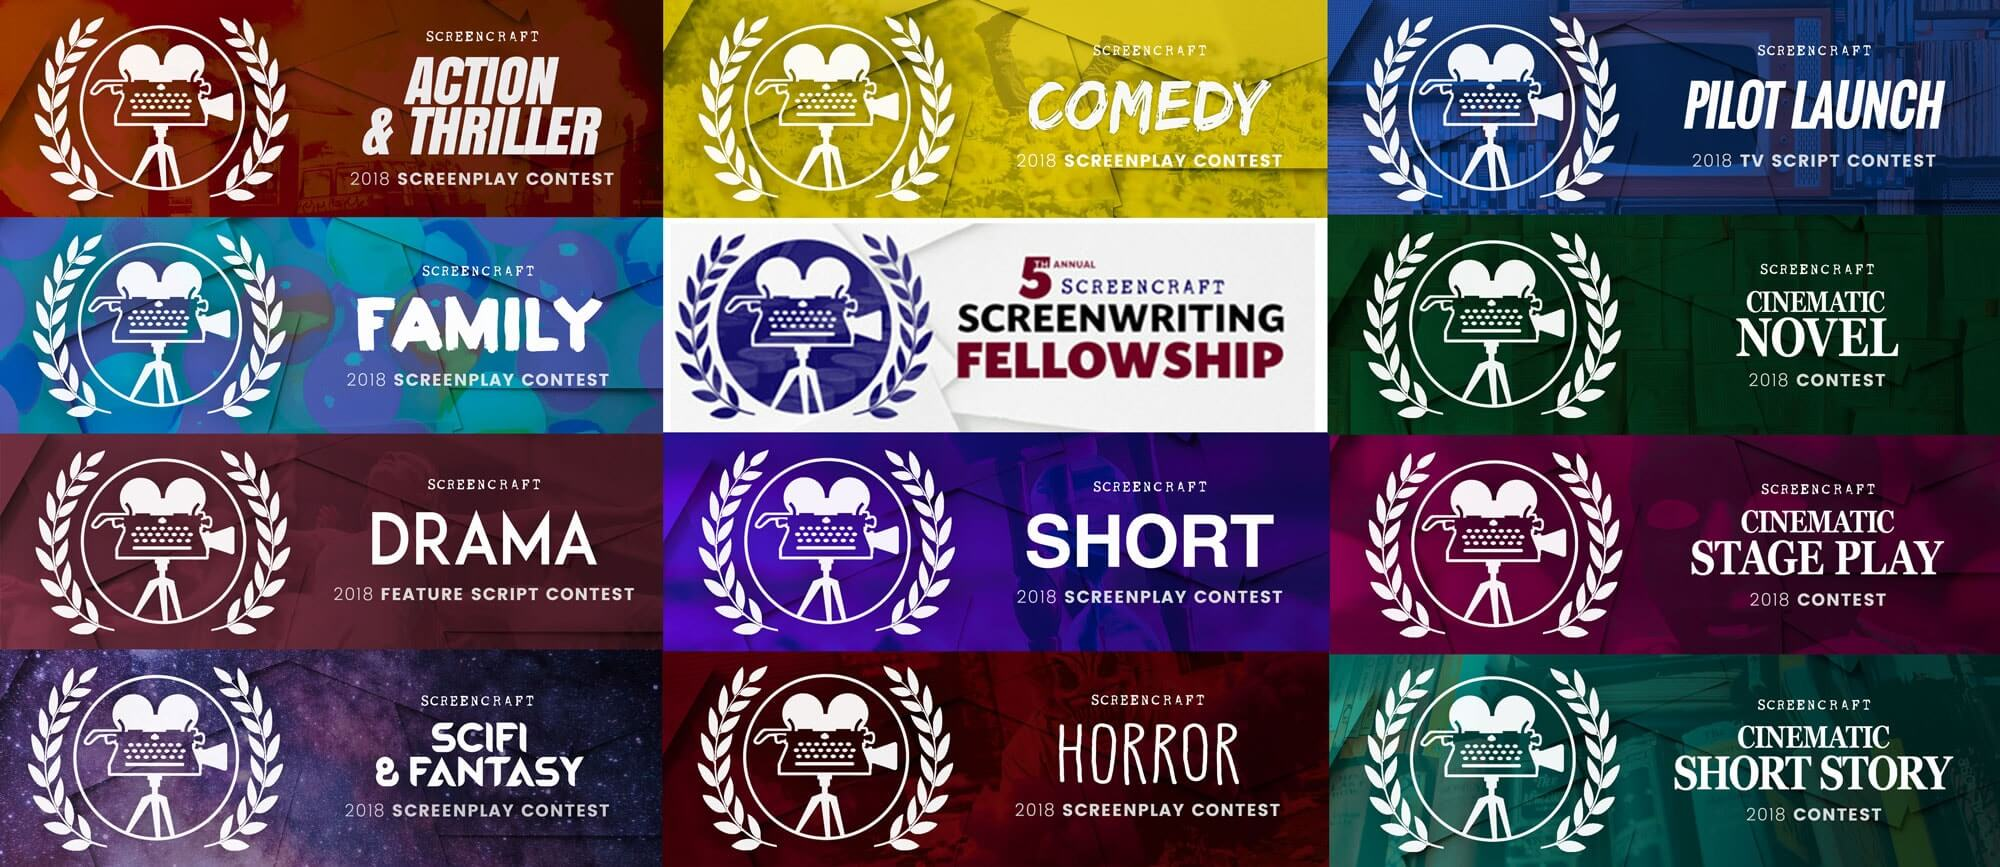 Best Screenwriting Contests 2019 12 Best Screenwriting Contests You Need to Enter Right Now